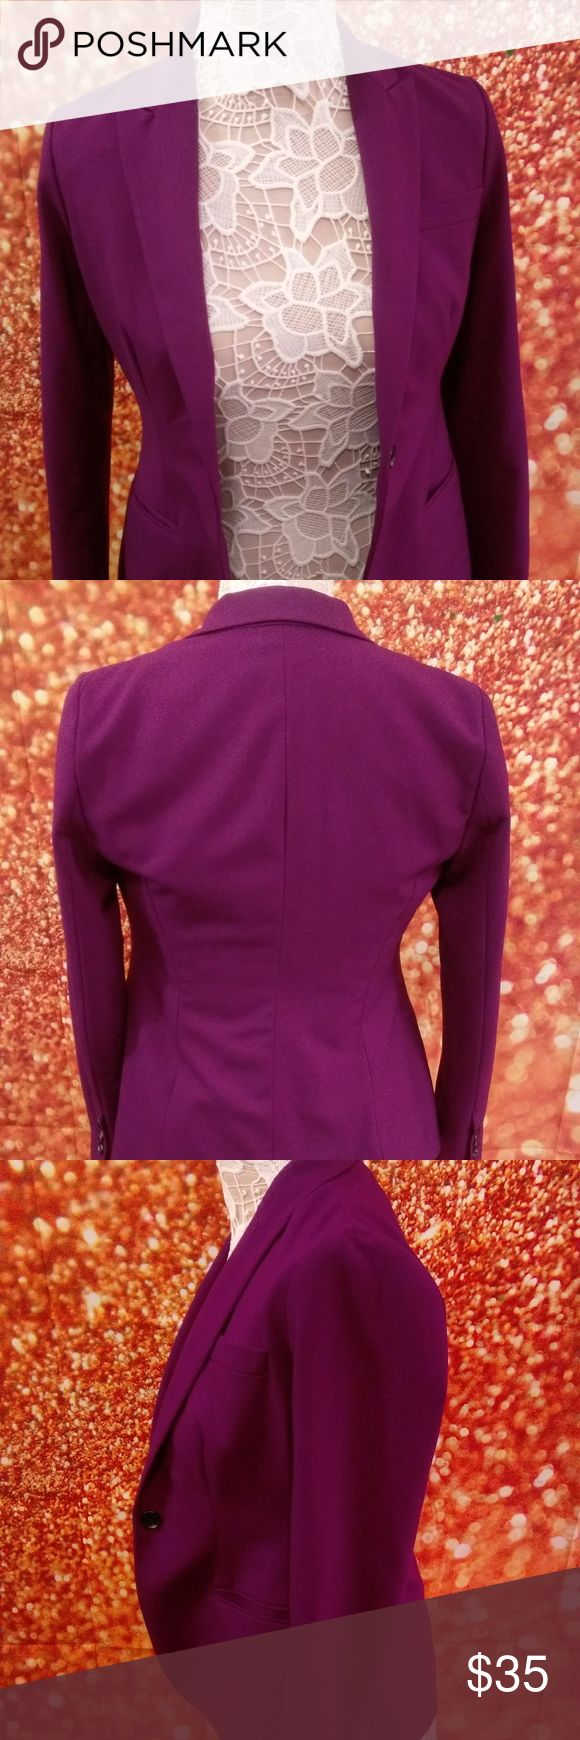 Vince Camuto Women's Purple Blazer in 0P This is a super cute brightly colored purple blazer. Can be worn as your pop of color with jeans or in the office! Vince Camuto Jackets & Coats Blazers